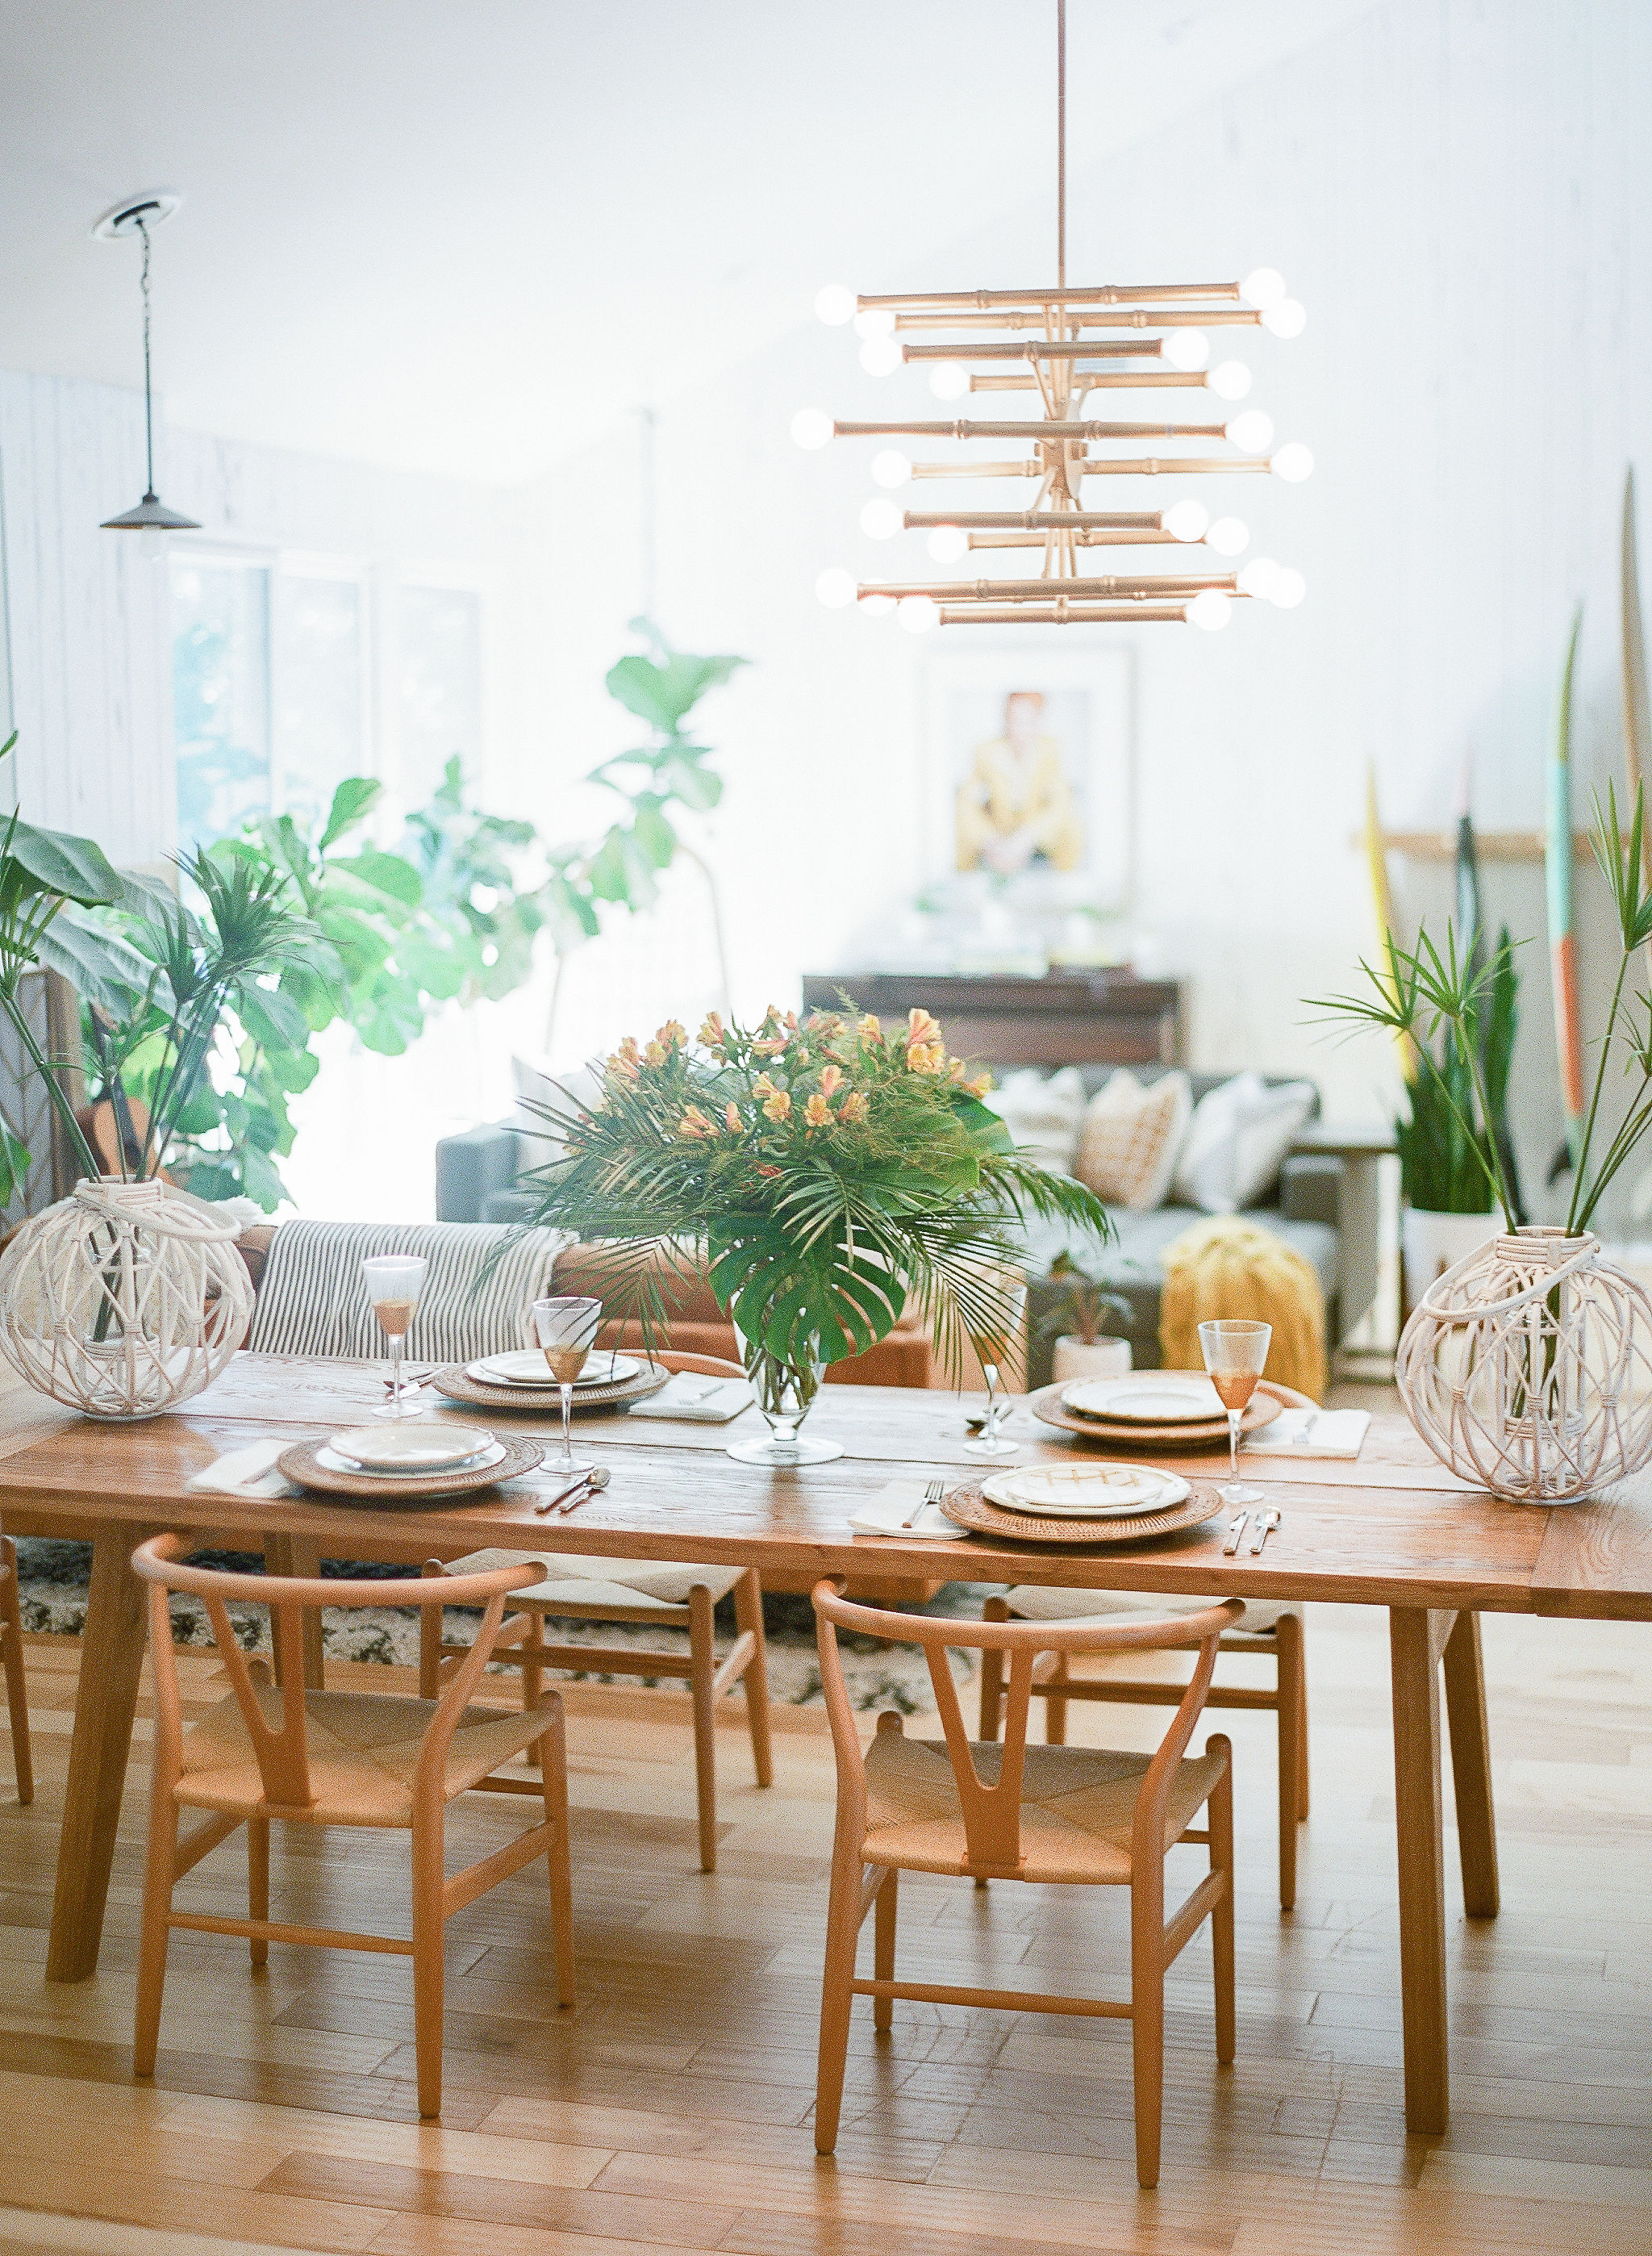 Natural tropical decor for boho brunch in Charleston SC